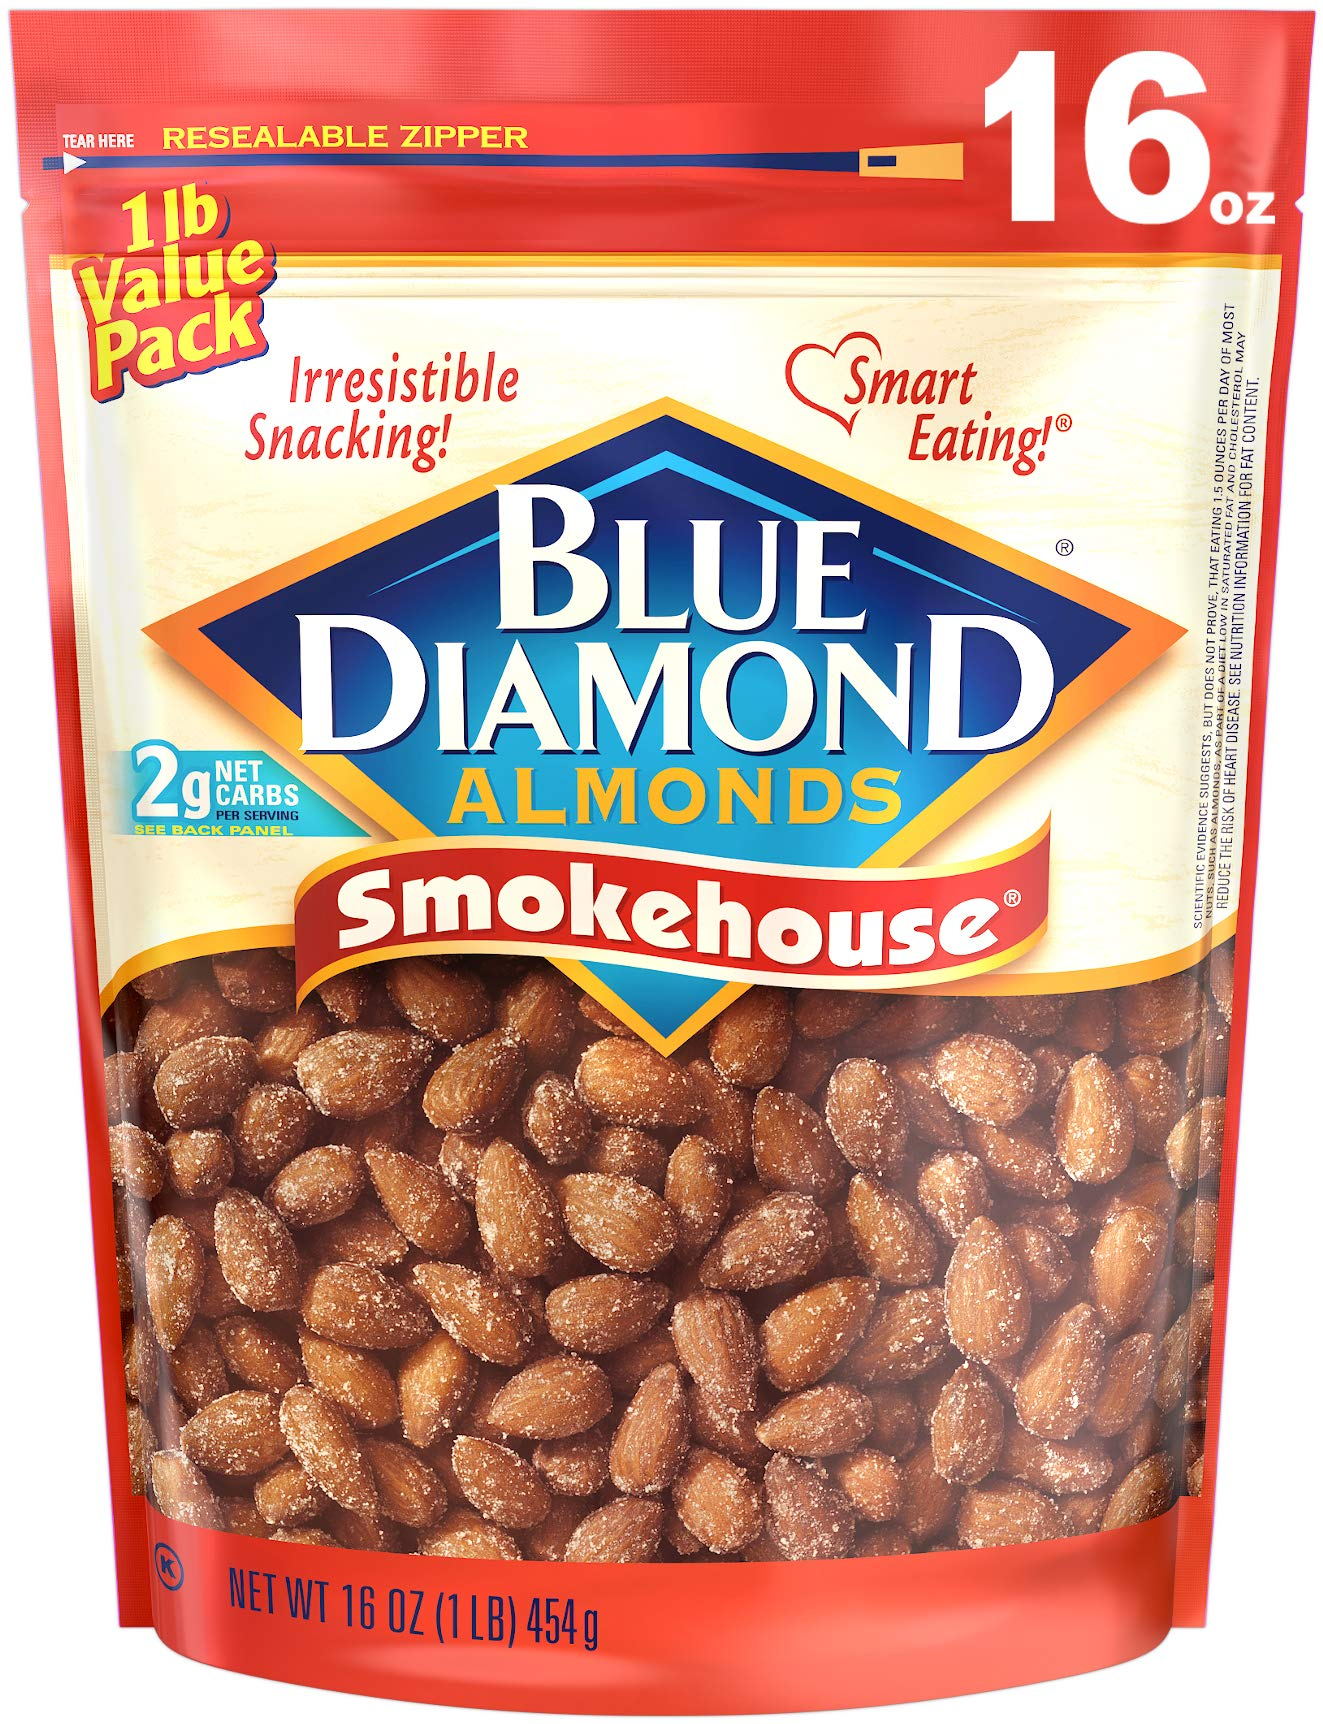 Blue Diamond Almonds Gluten Free Smokehouse Flavored Snack Nuts, 16 Oz Resealable Bag (Pack of 1)